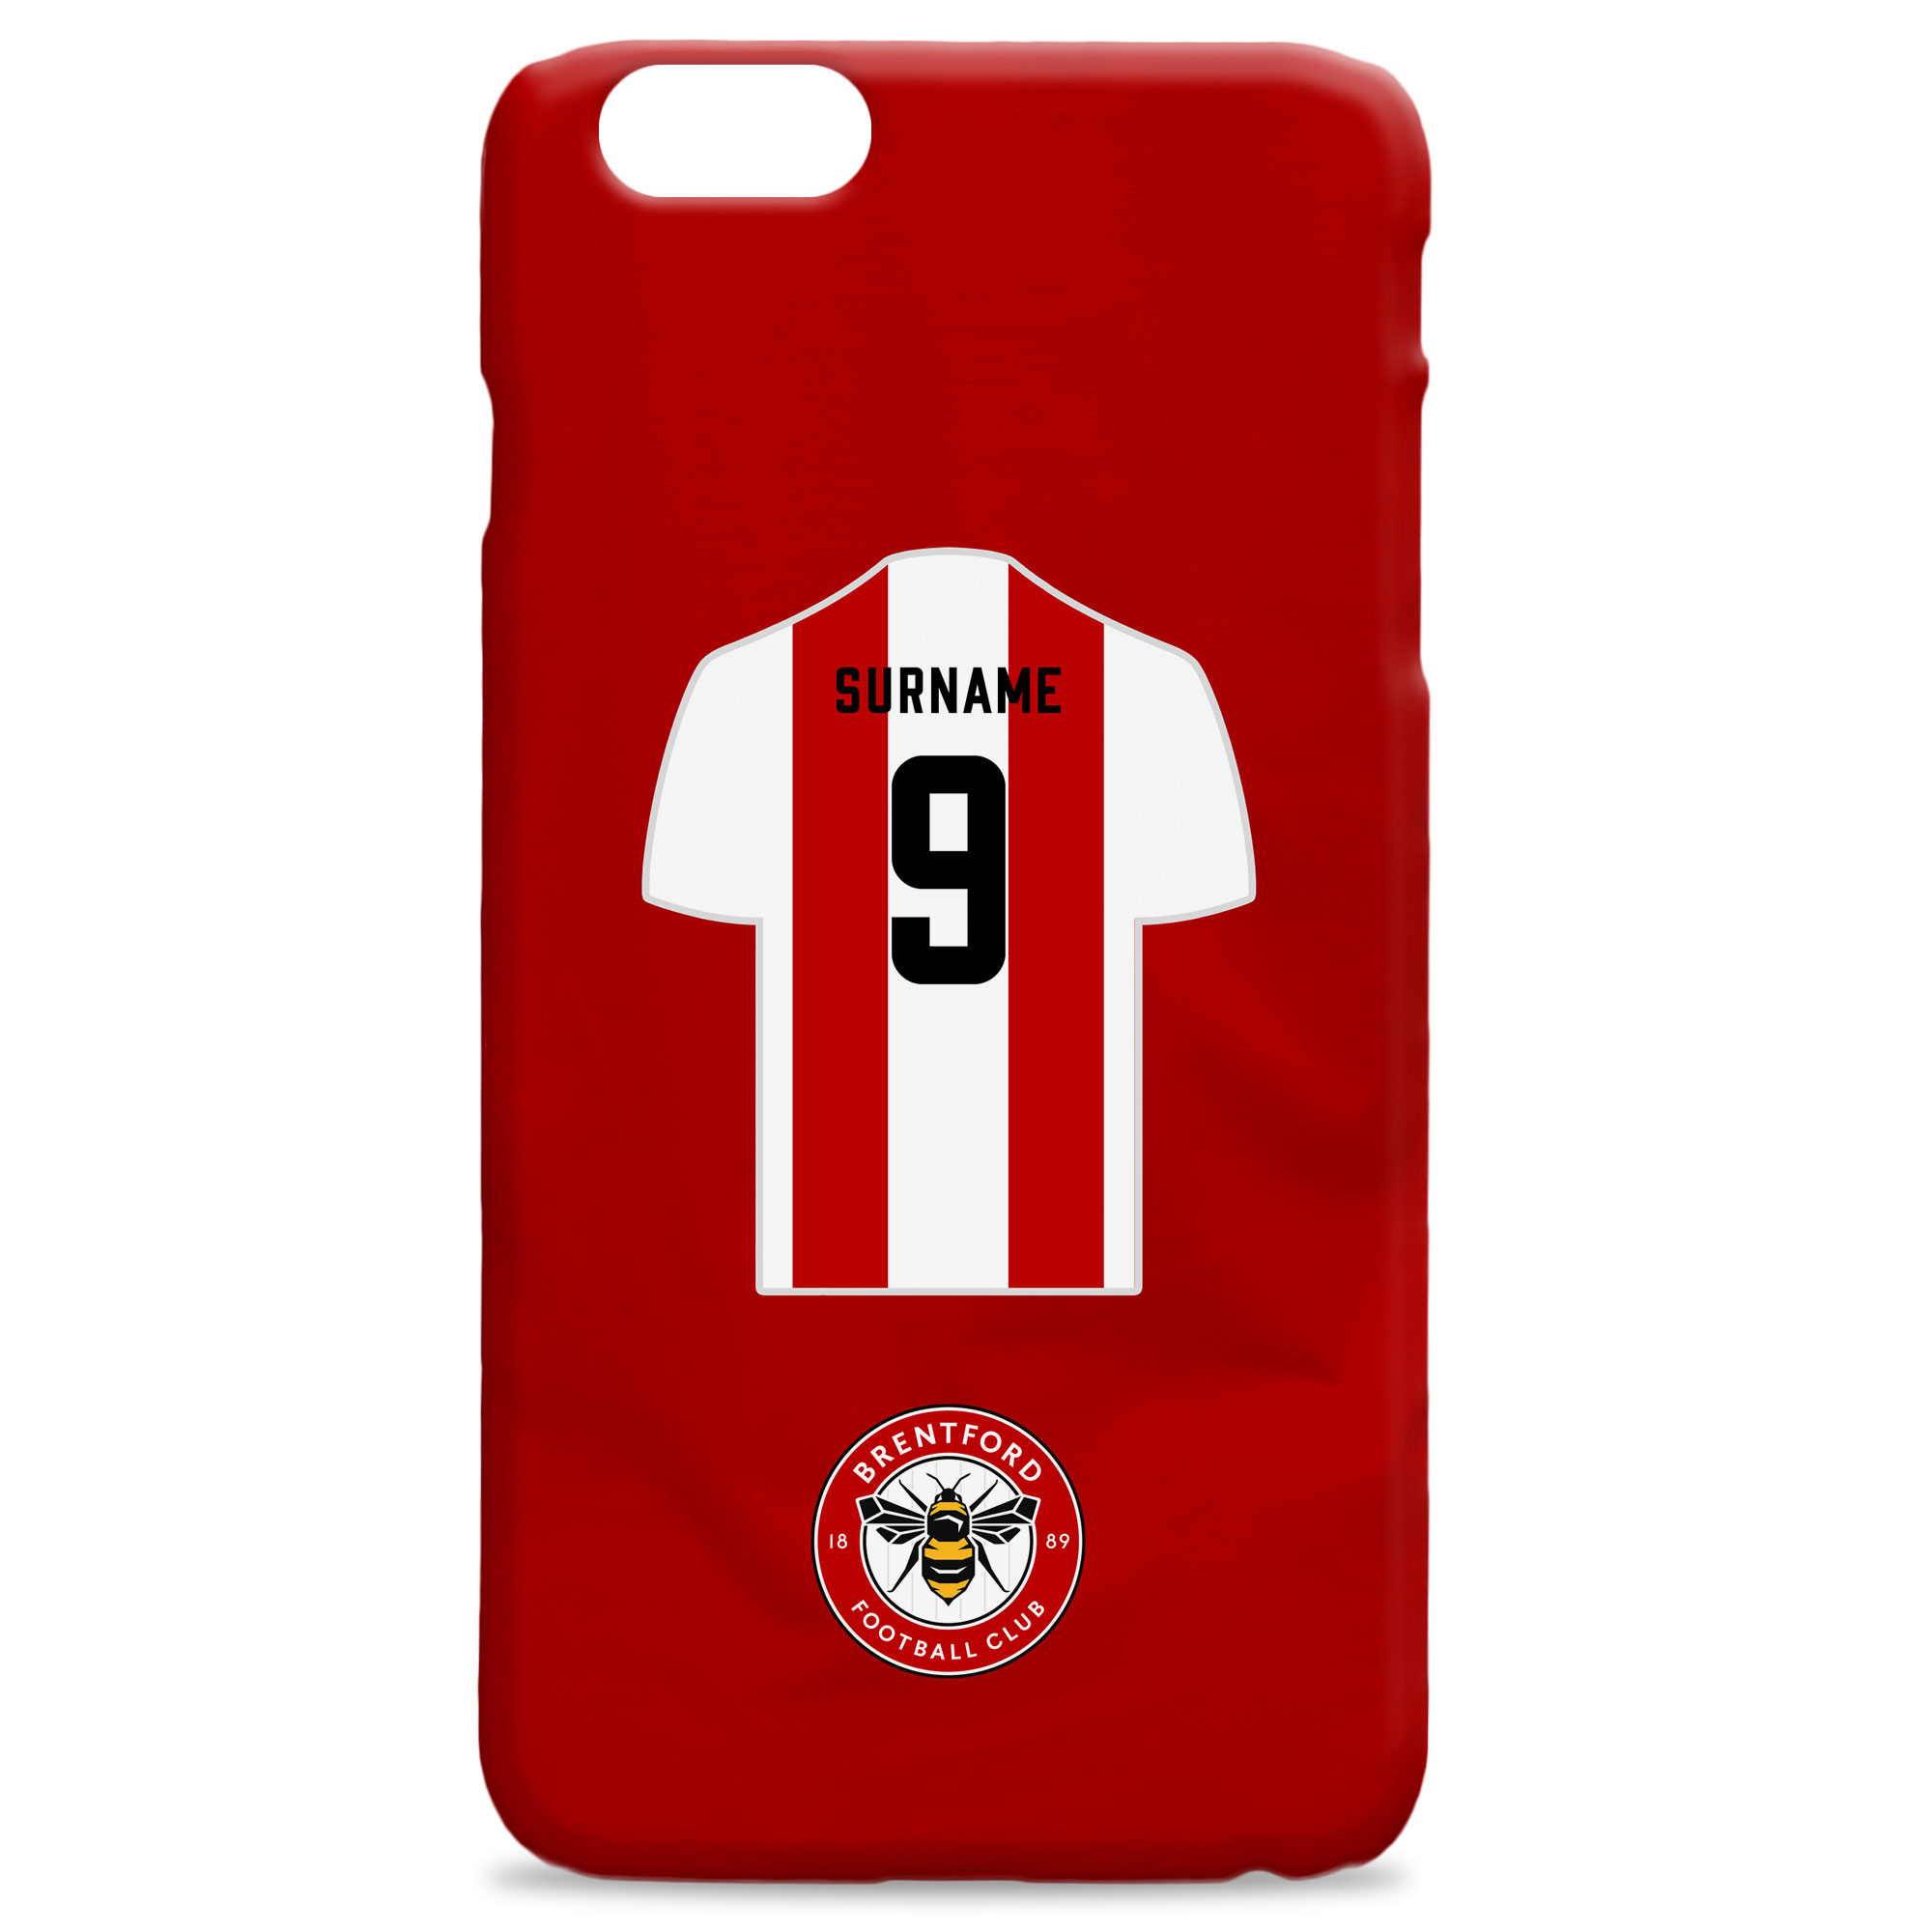 Brentford FC Shirt Hard Back Phone Case